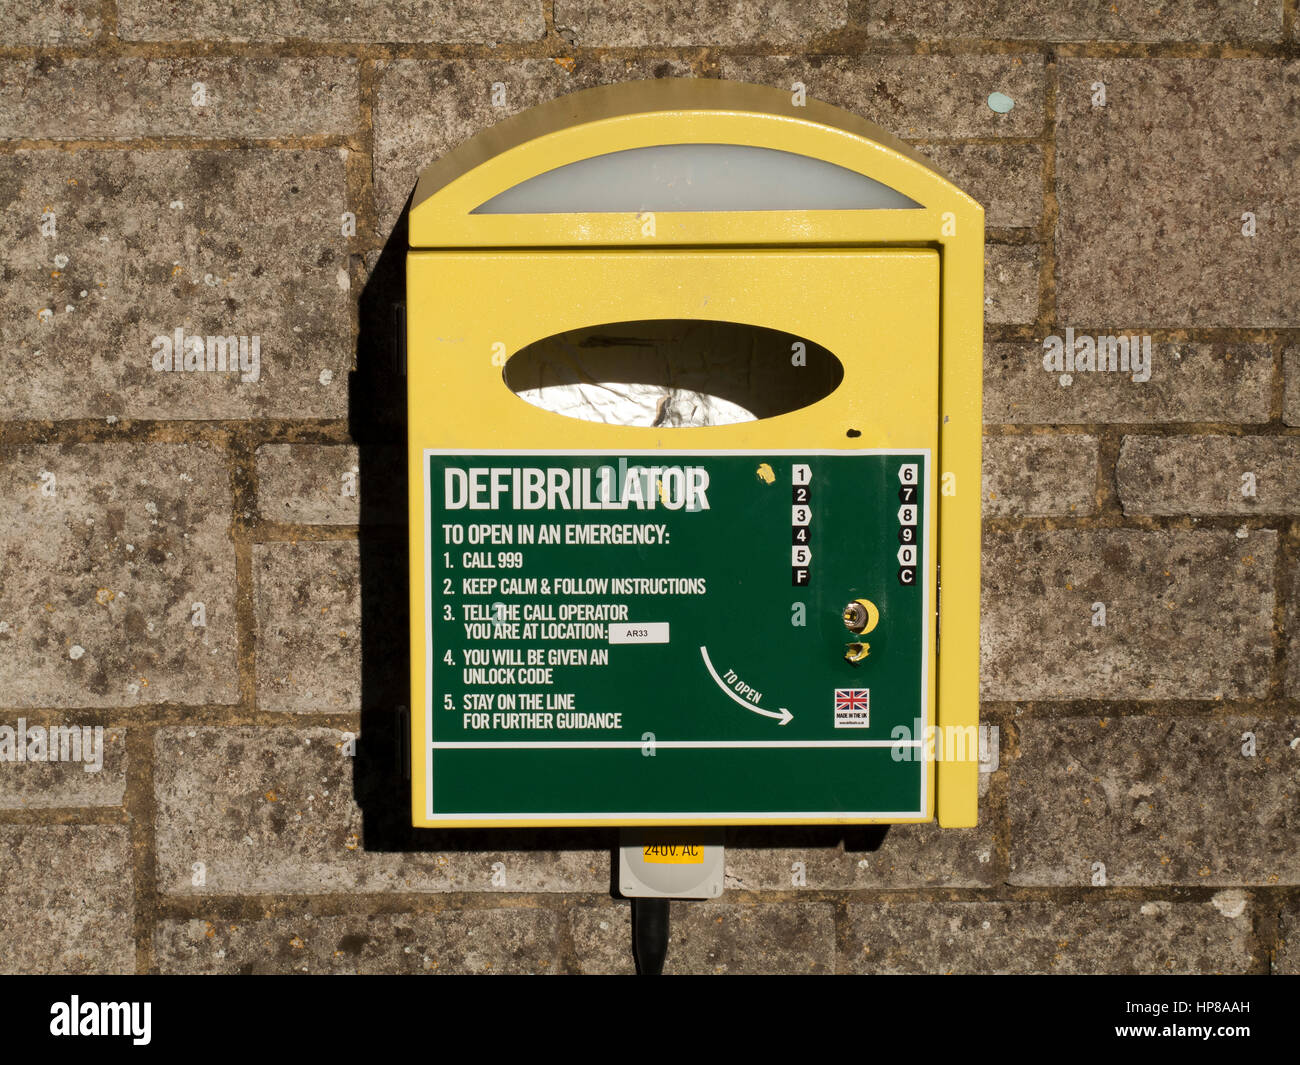 Medical defibrillator mounted on stone wall for use by the general public with instructions - Stock Image